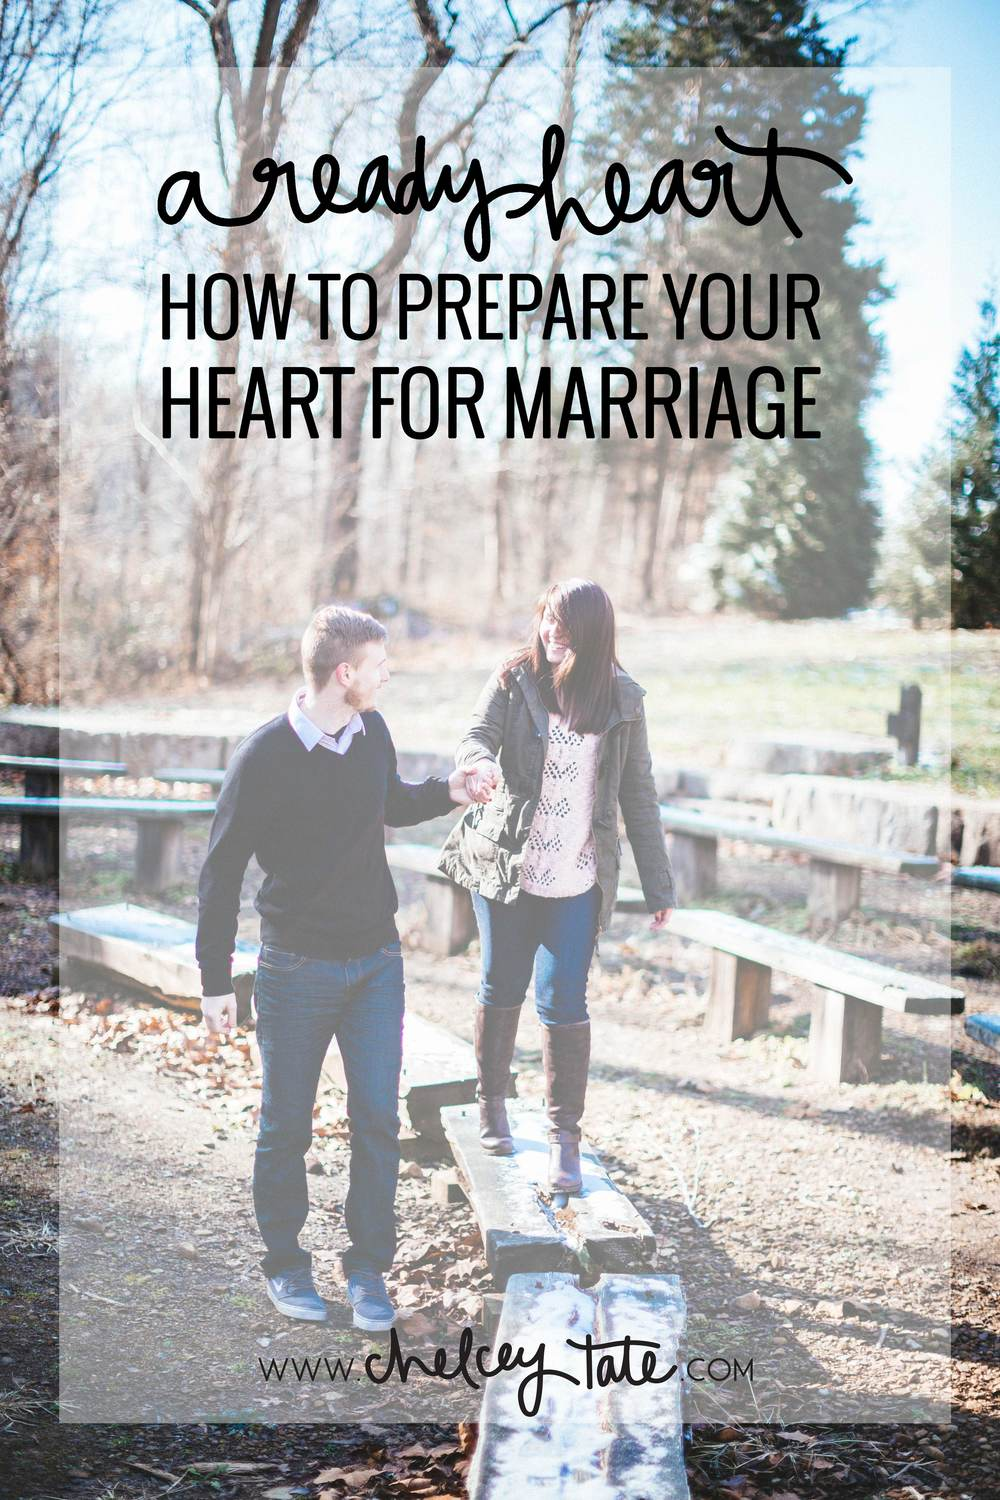 A Ready Heart - Preparing Your Heart For Marriage www.chelceytate.com